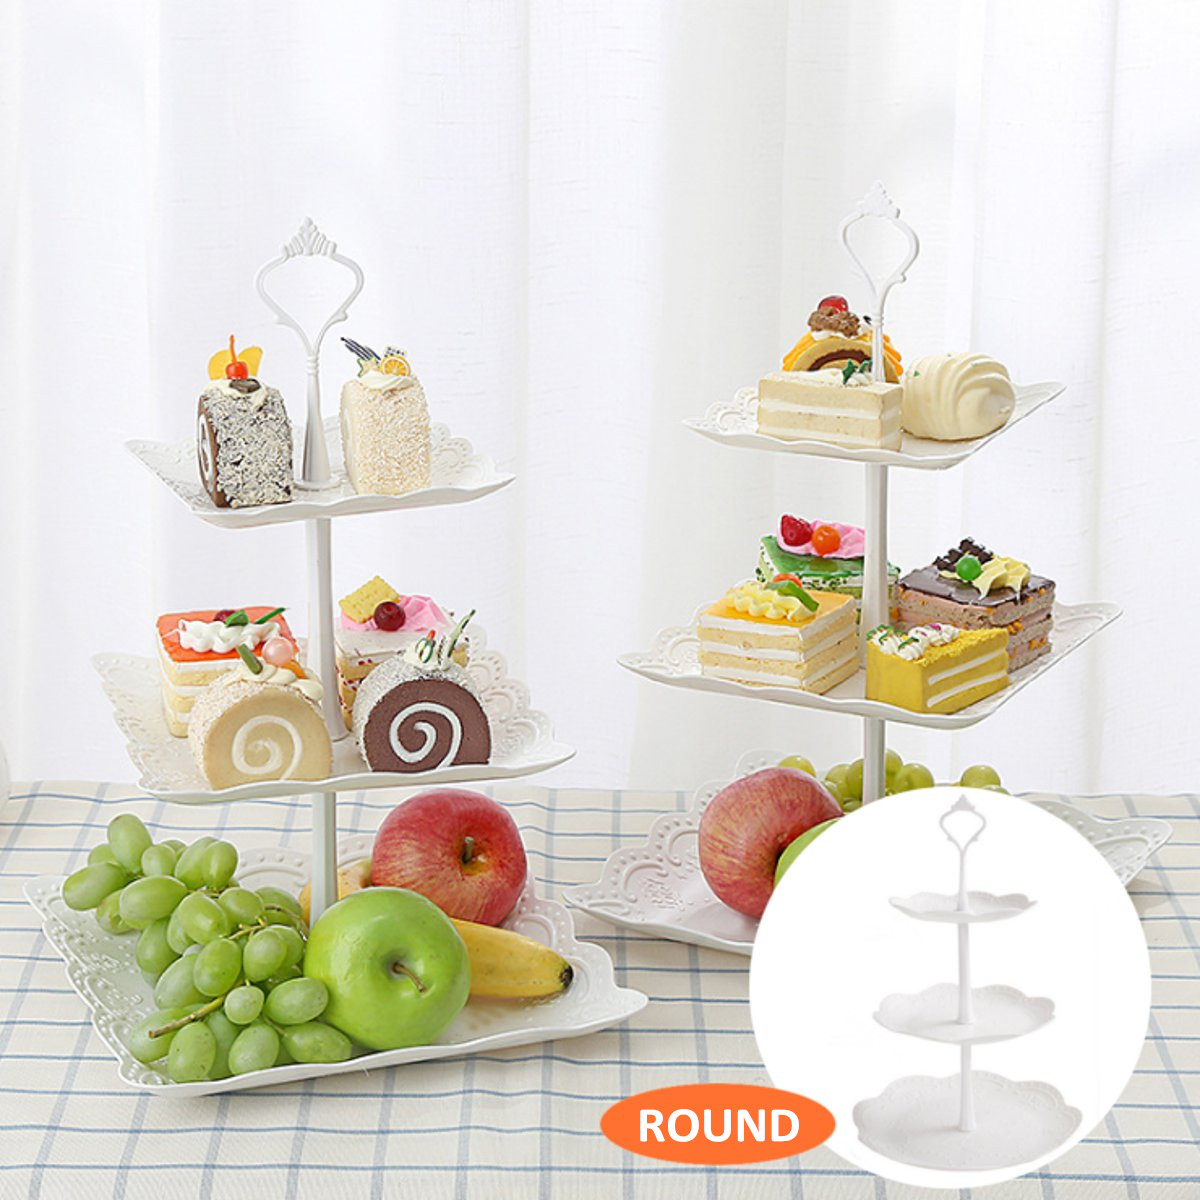 3 Tier Cake Stand Afternoon Tea Wedding Plates Party Embossed Display Tableware Cake Decorations